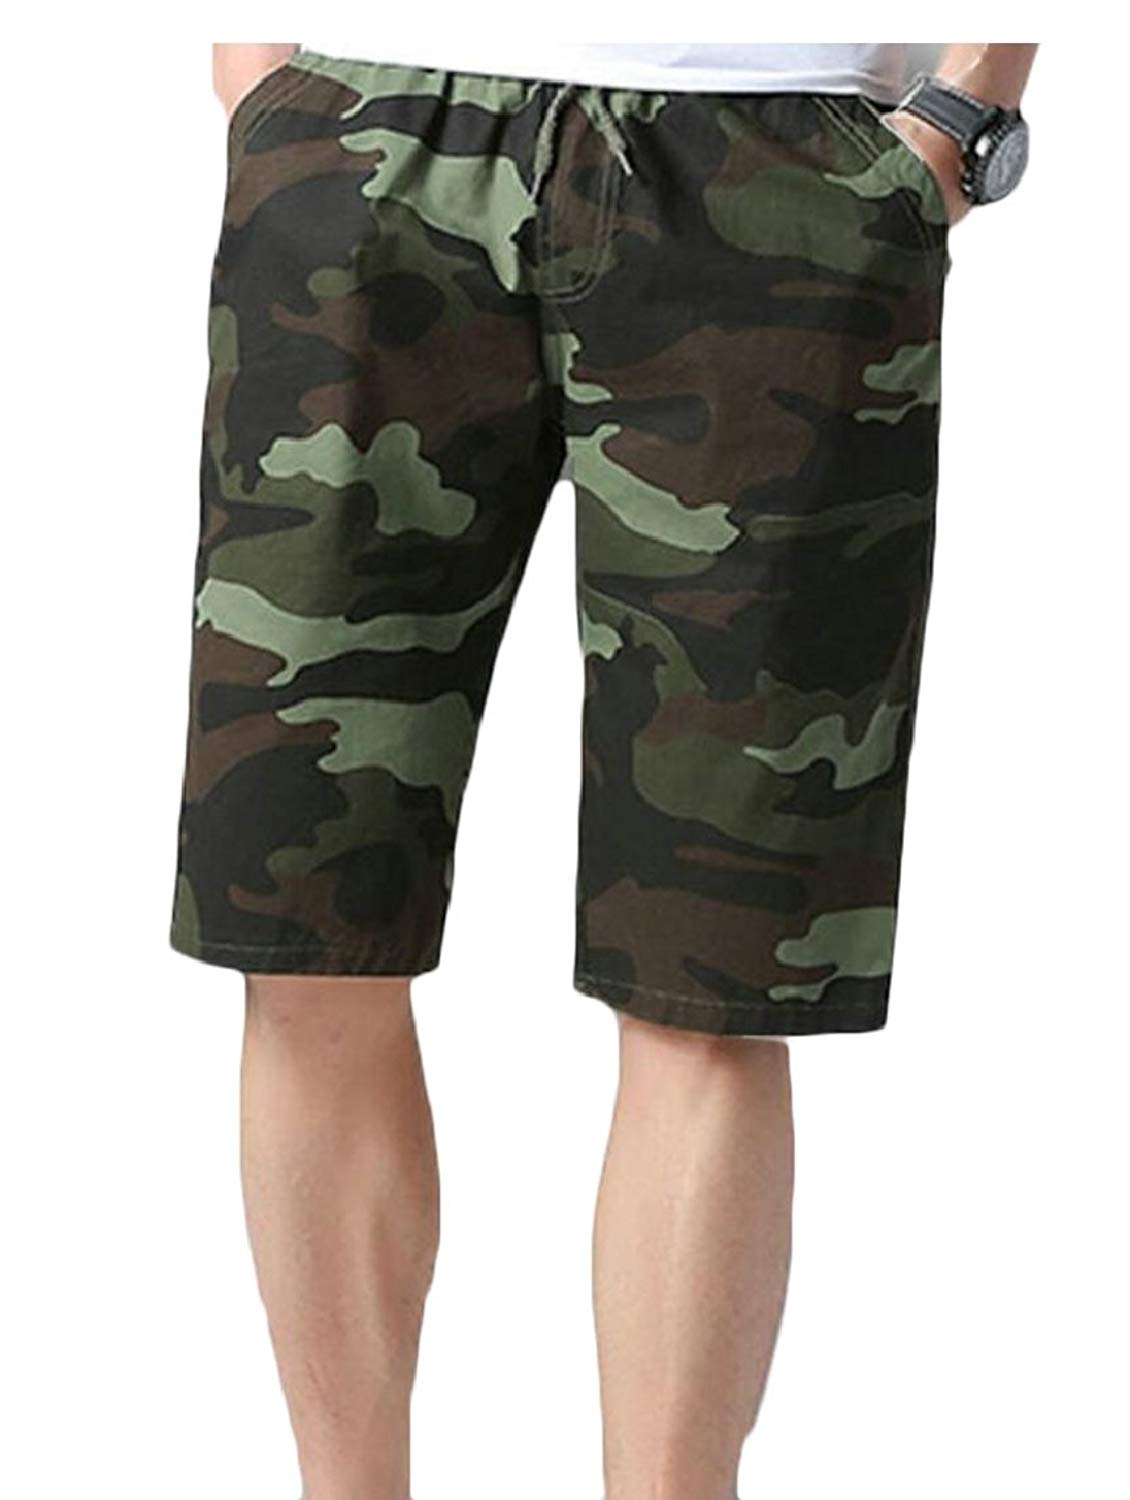 109ab9f4fc864 Get Quotations · WSPLYSPJY Men's Beach Shorts Printing Camo Swim Trunks  with Pockets Quick Dry Casual Swim Shorts